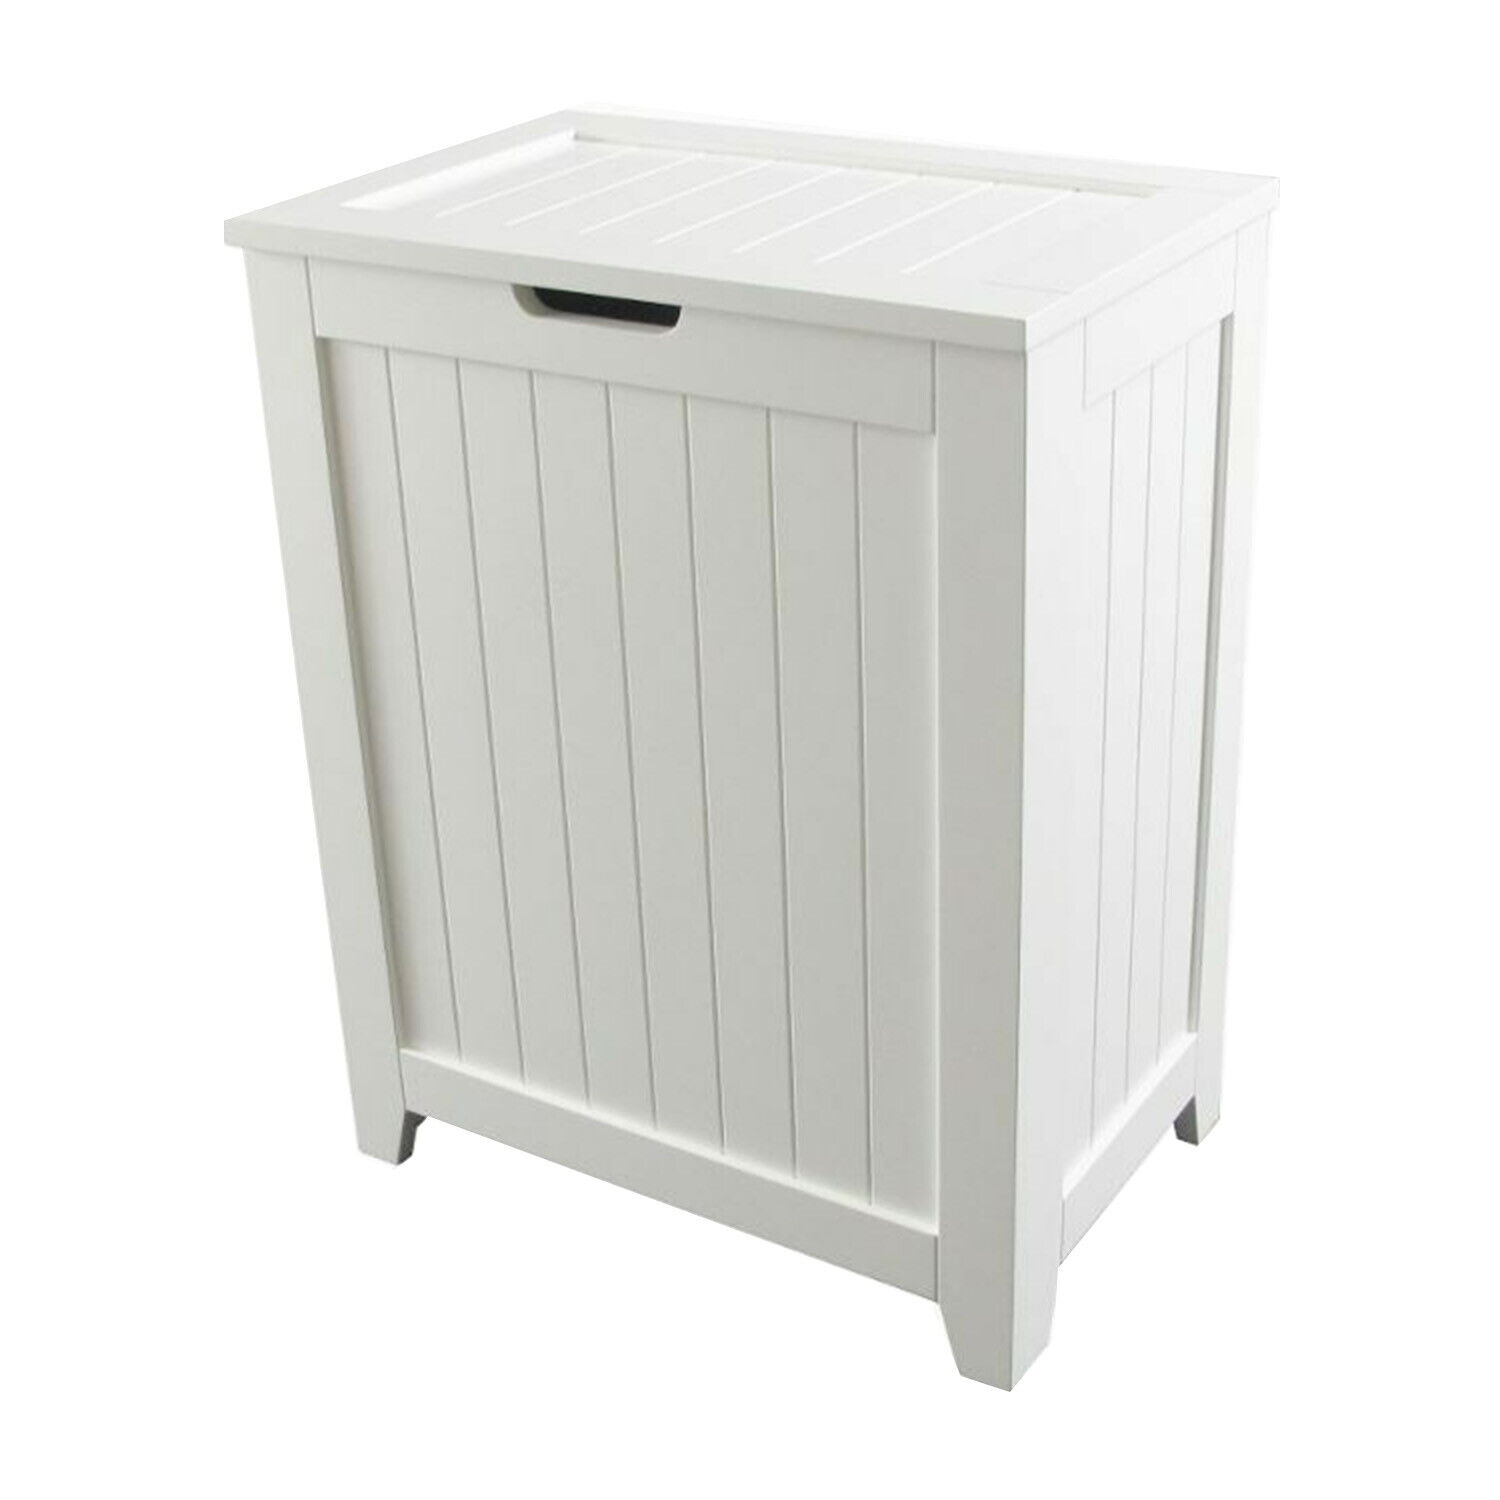 Laundry Hamper With Lid Wood Clothes Storage Bin Bathroom Or